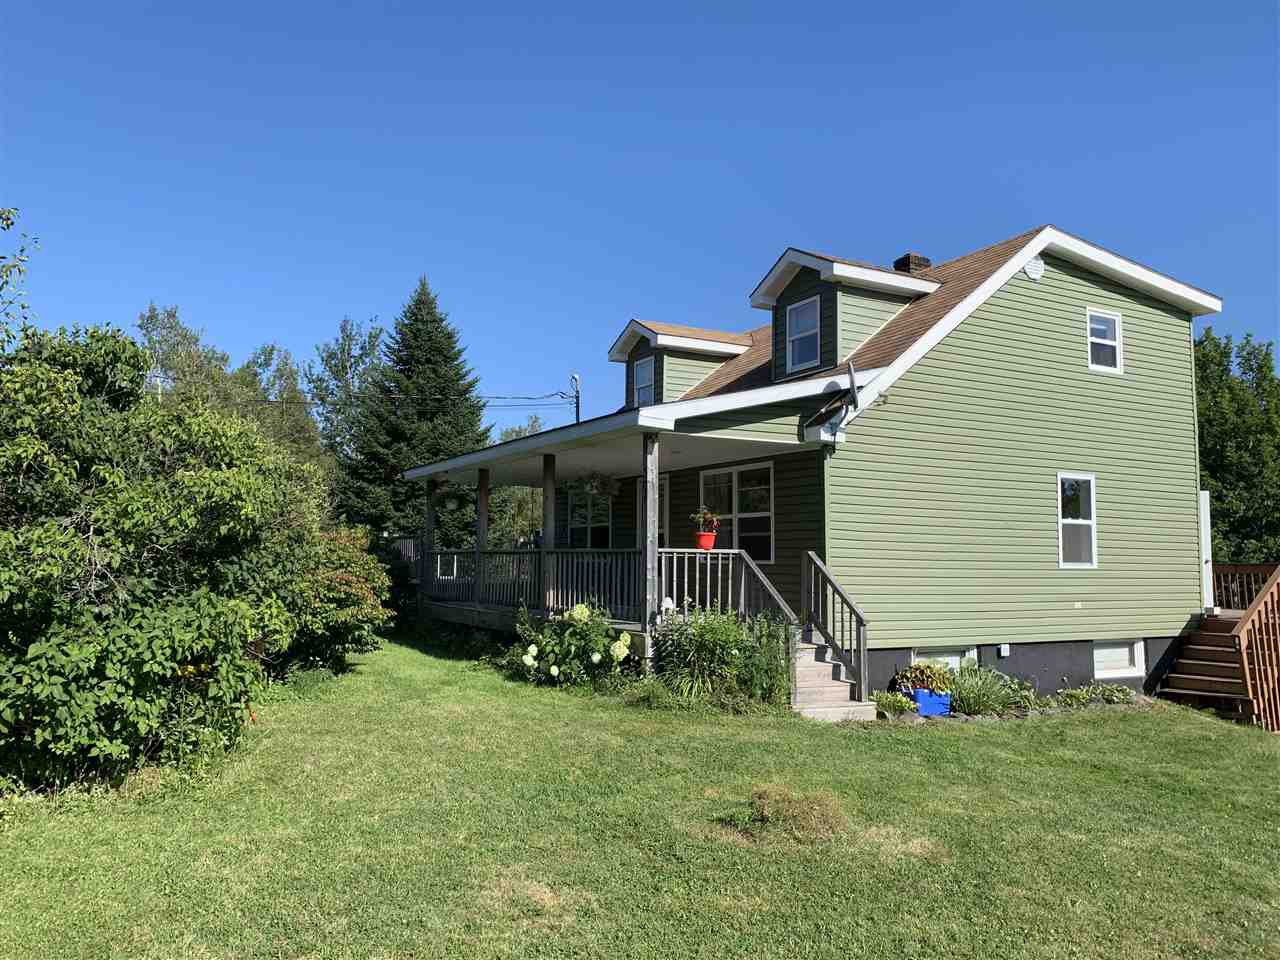 Main Photo: 304 Frasers Mountain Branch Road in Frasers Mountain: 108-Rural Pictou County Residential for sale (Northern Region)  : MLS®# 201921063